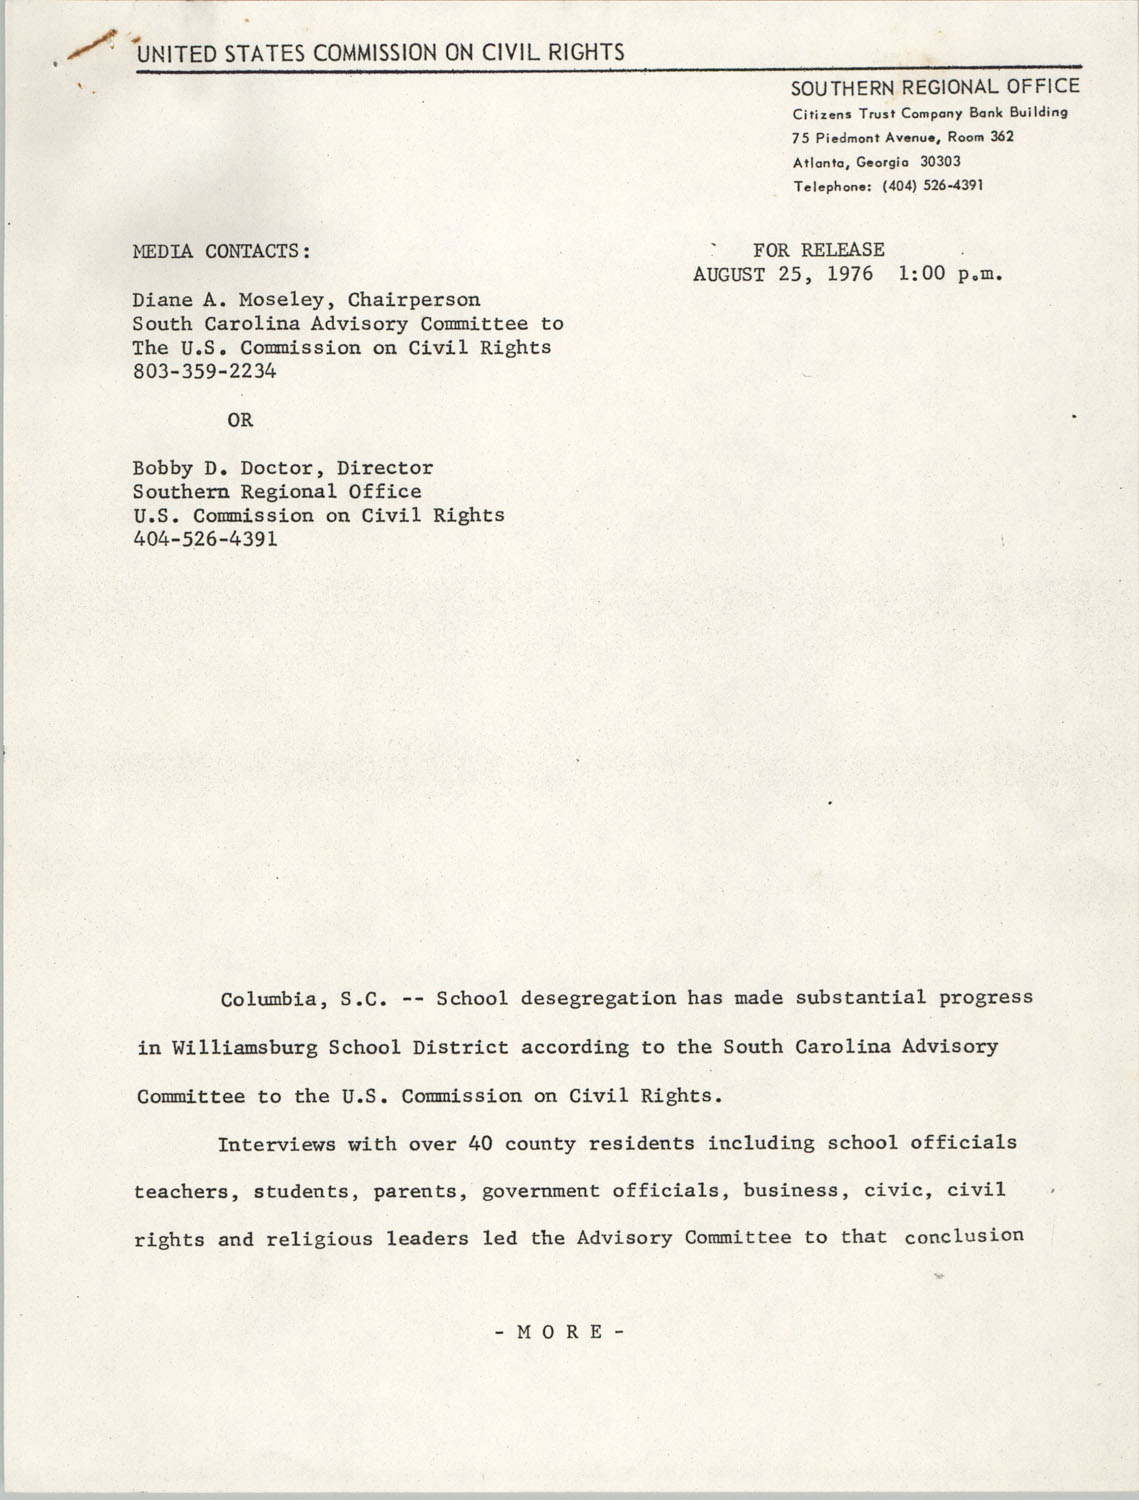 Press Release Statement, United States Commission on Civil Rights, August 25, 1976